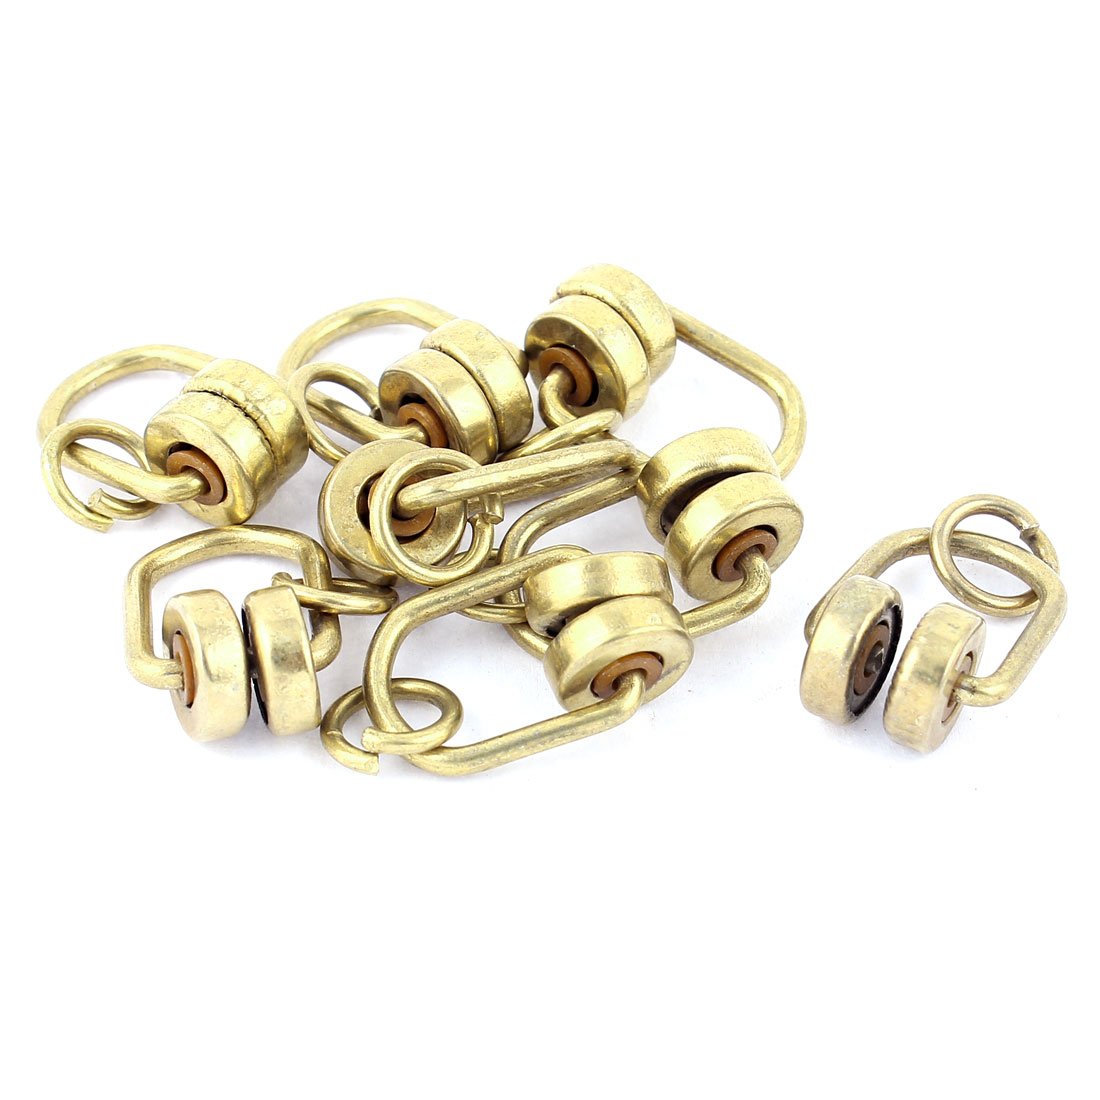 Bronze Tone Brass 11mm Dia Wheel Curtain Track Rail Runners Hanging Gliders 8pcs